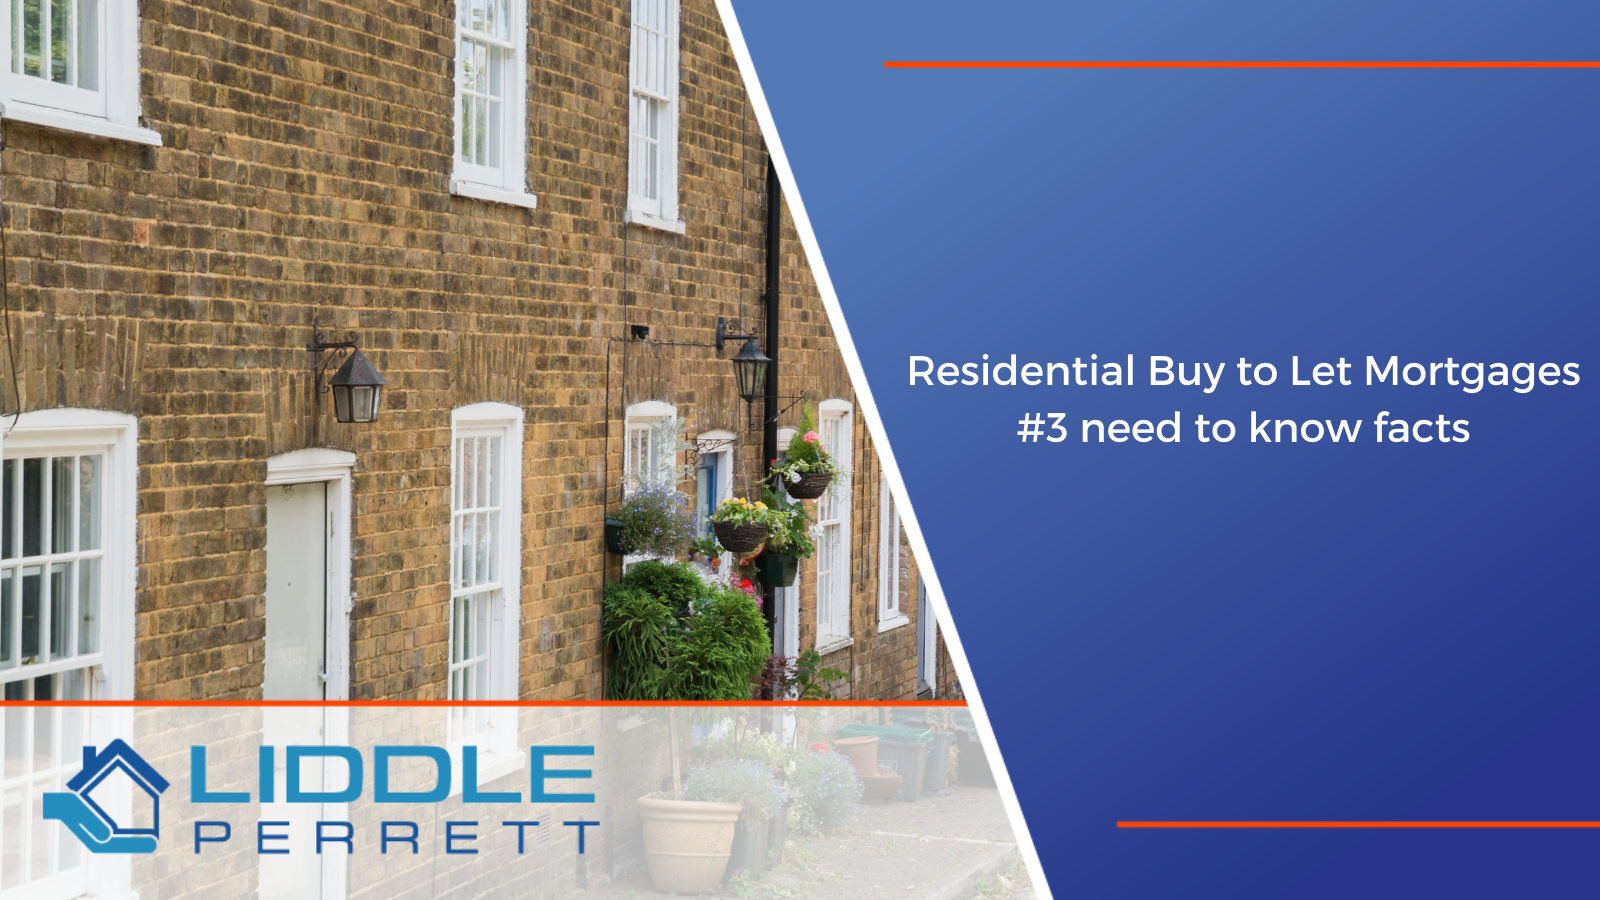 Residential Buy to Let Mortgages #3 need to know facts